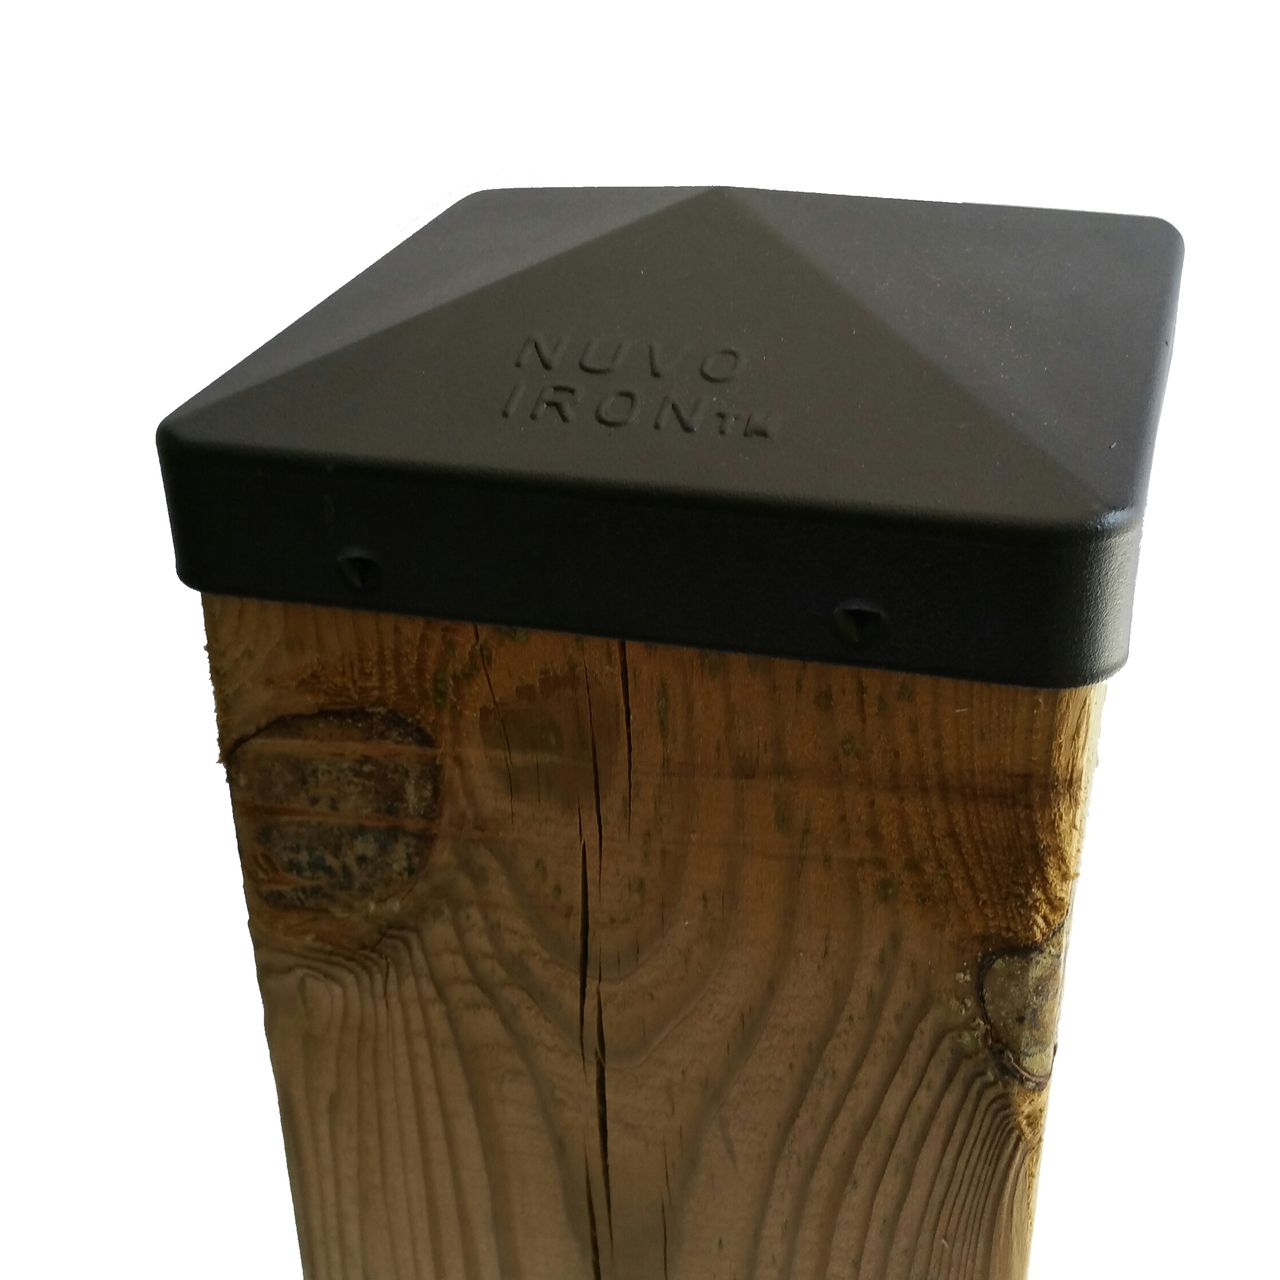 Nuvo Iron 5 5 X 5 5 Post Cap Nominal 6x6 For Posts With Rounded Corners Black Pcp12blk Post Cap Metal Post Caps Wooden Posts